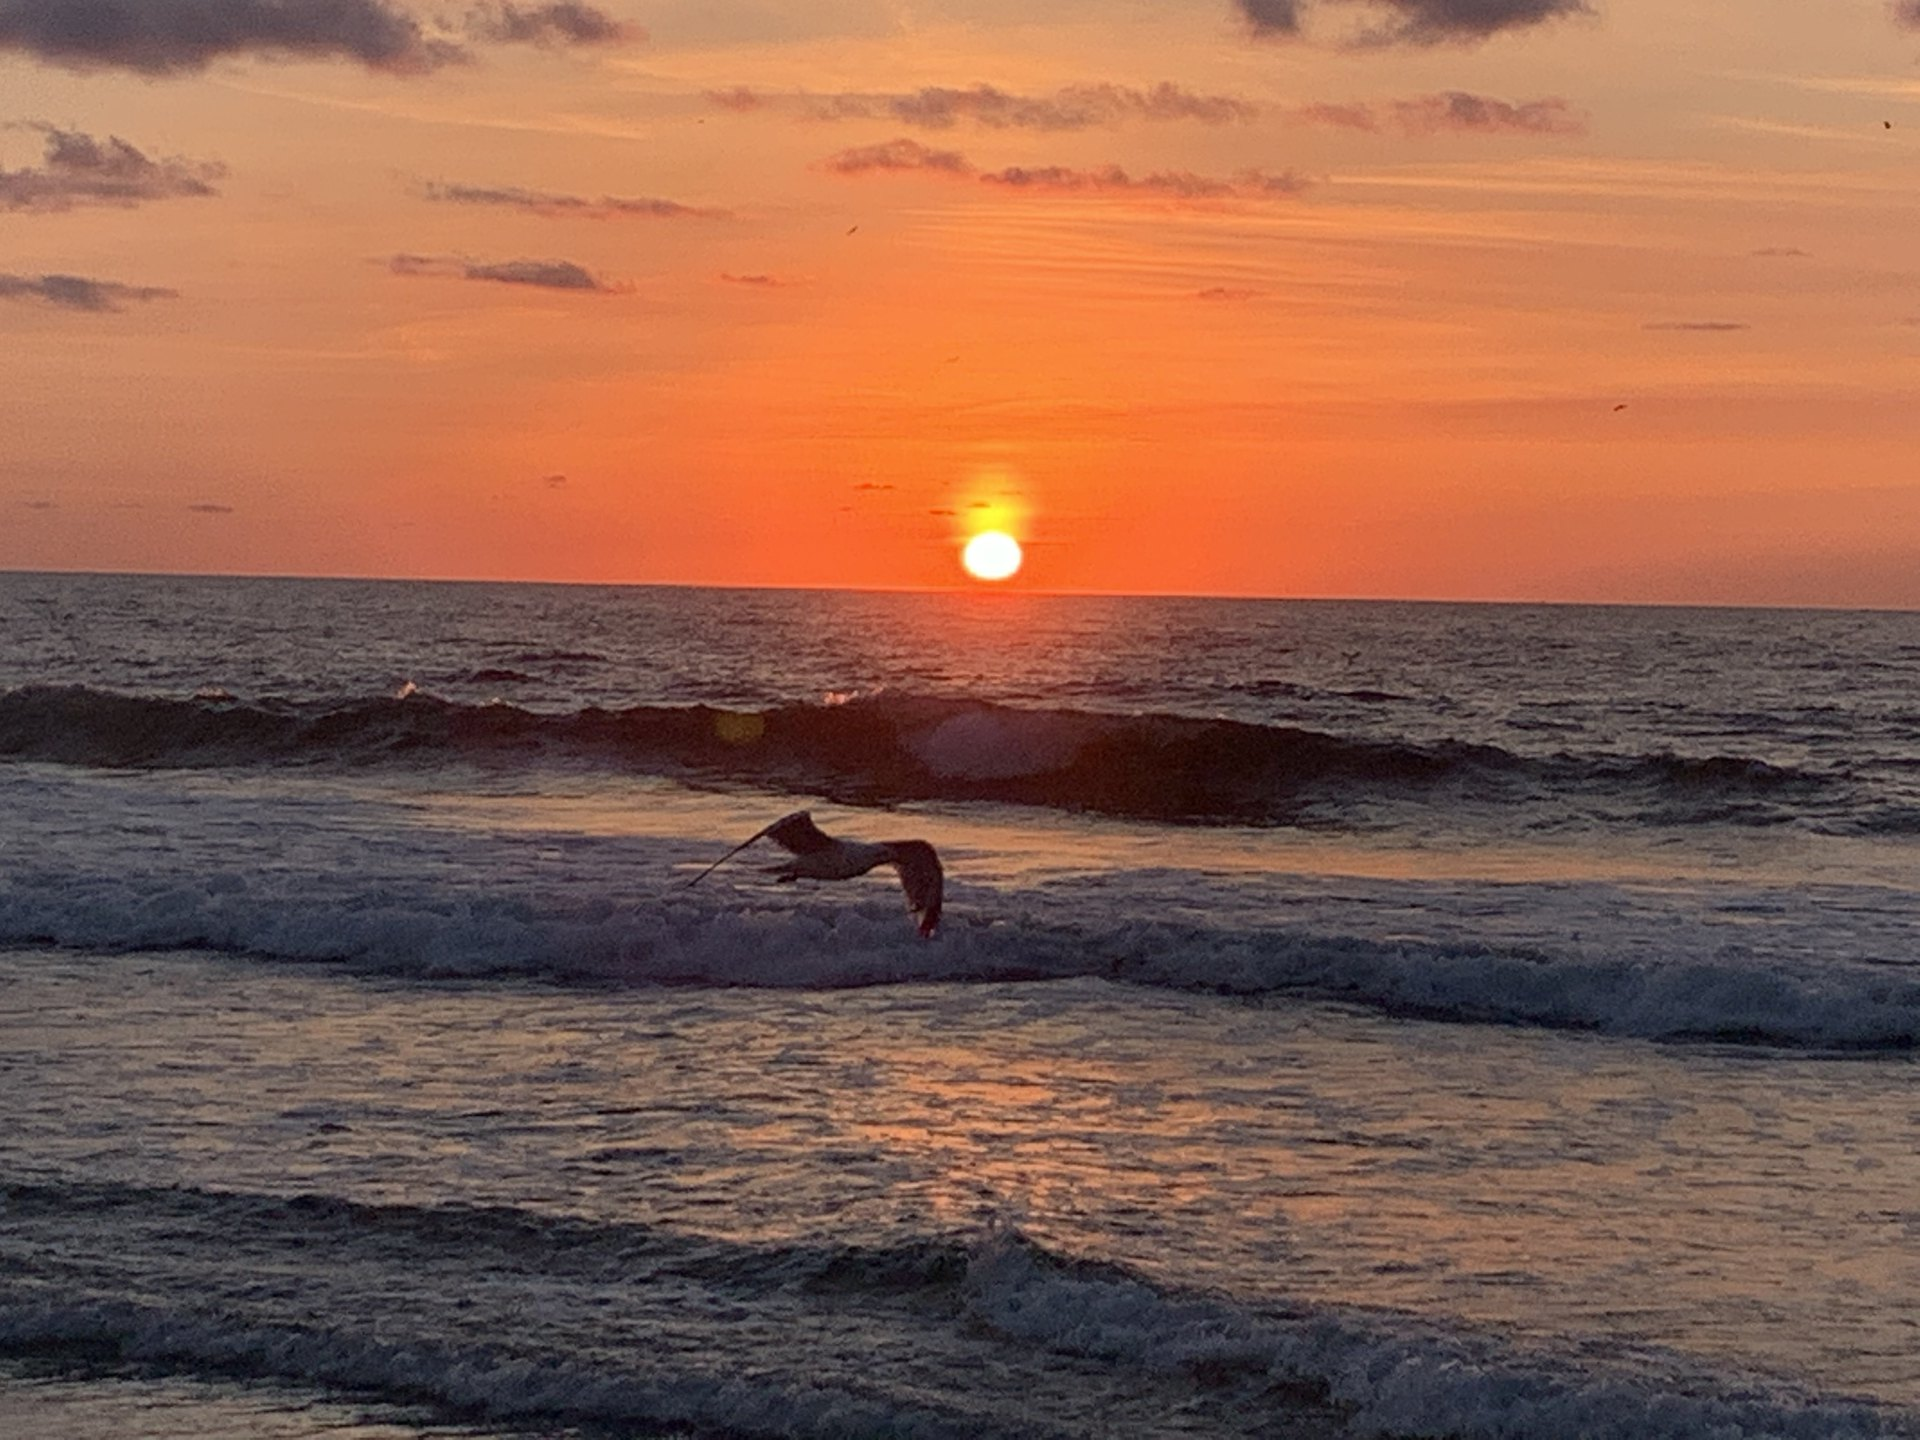 Acts 5 NASB.  Seagull flying over the ocean towards the rising sun.